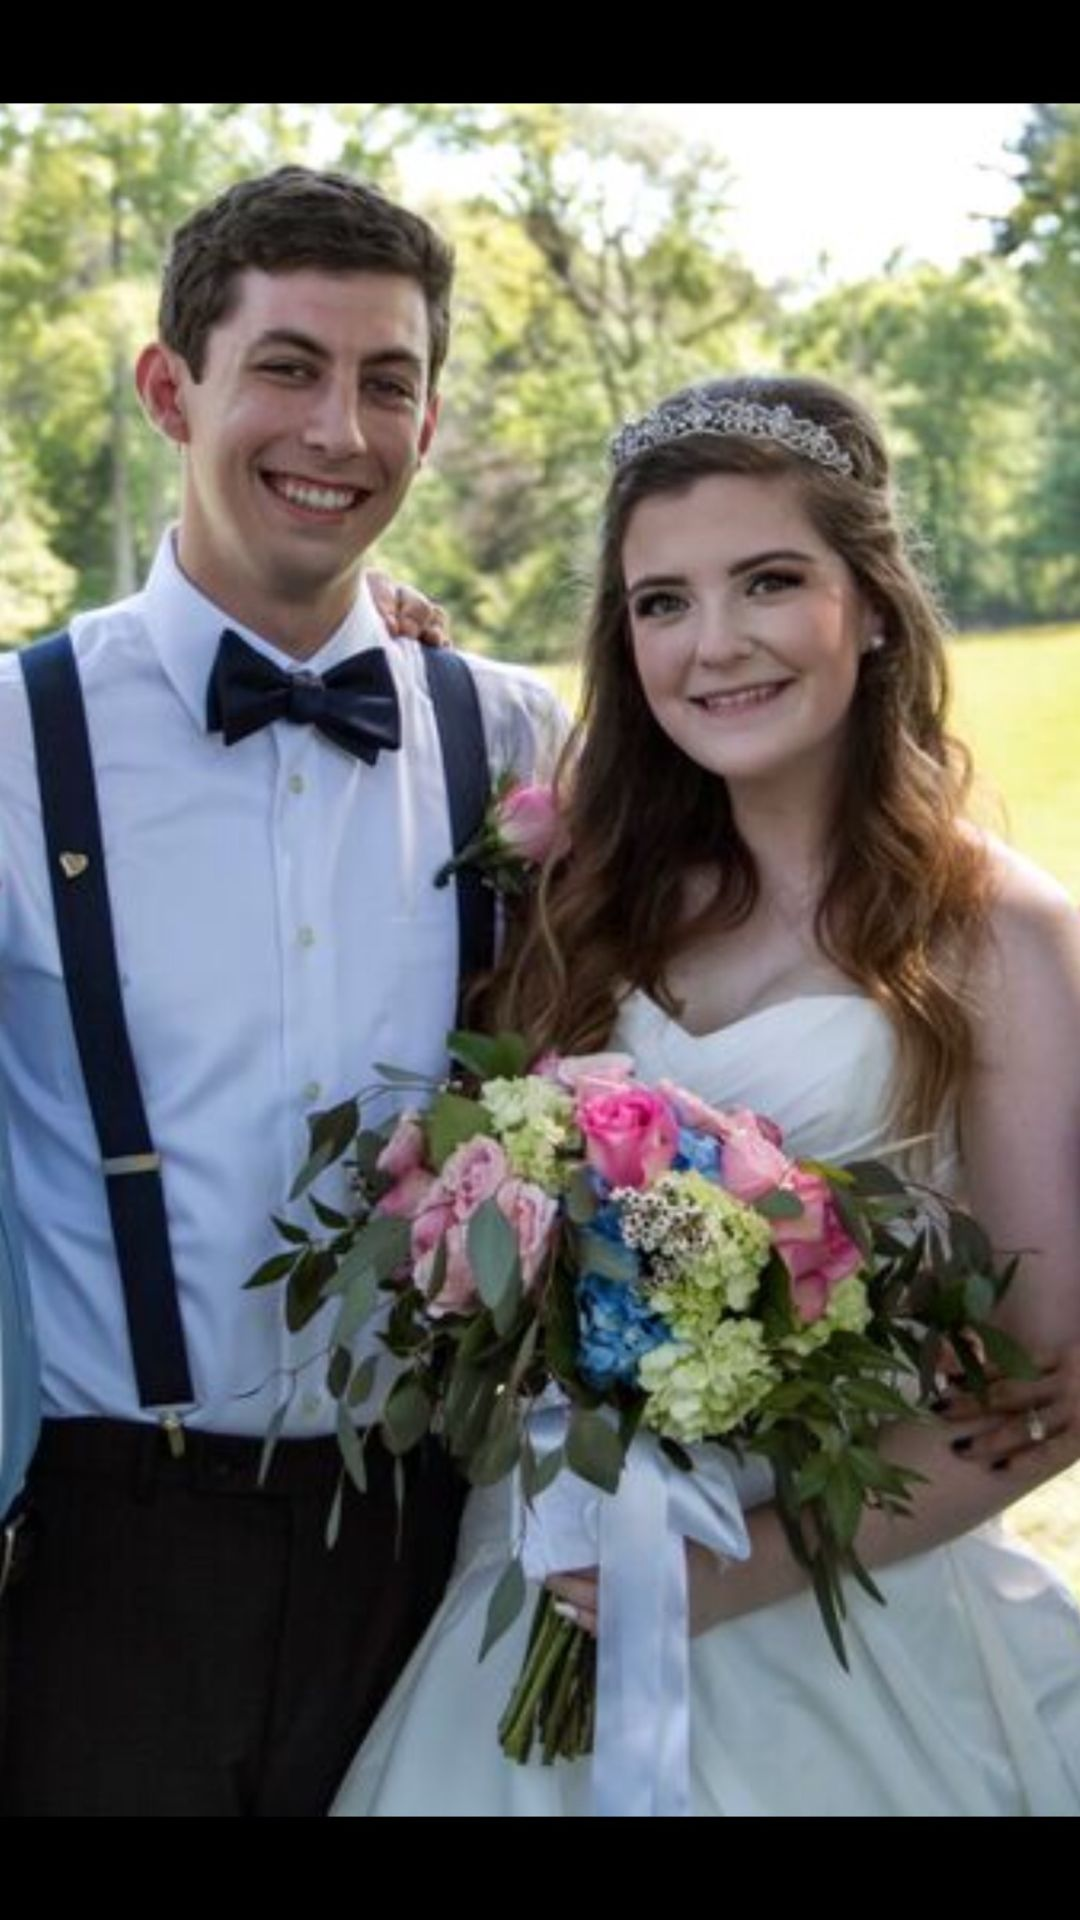 Mr. and Mrs. Brice Hornsby